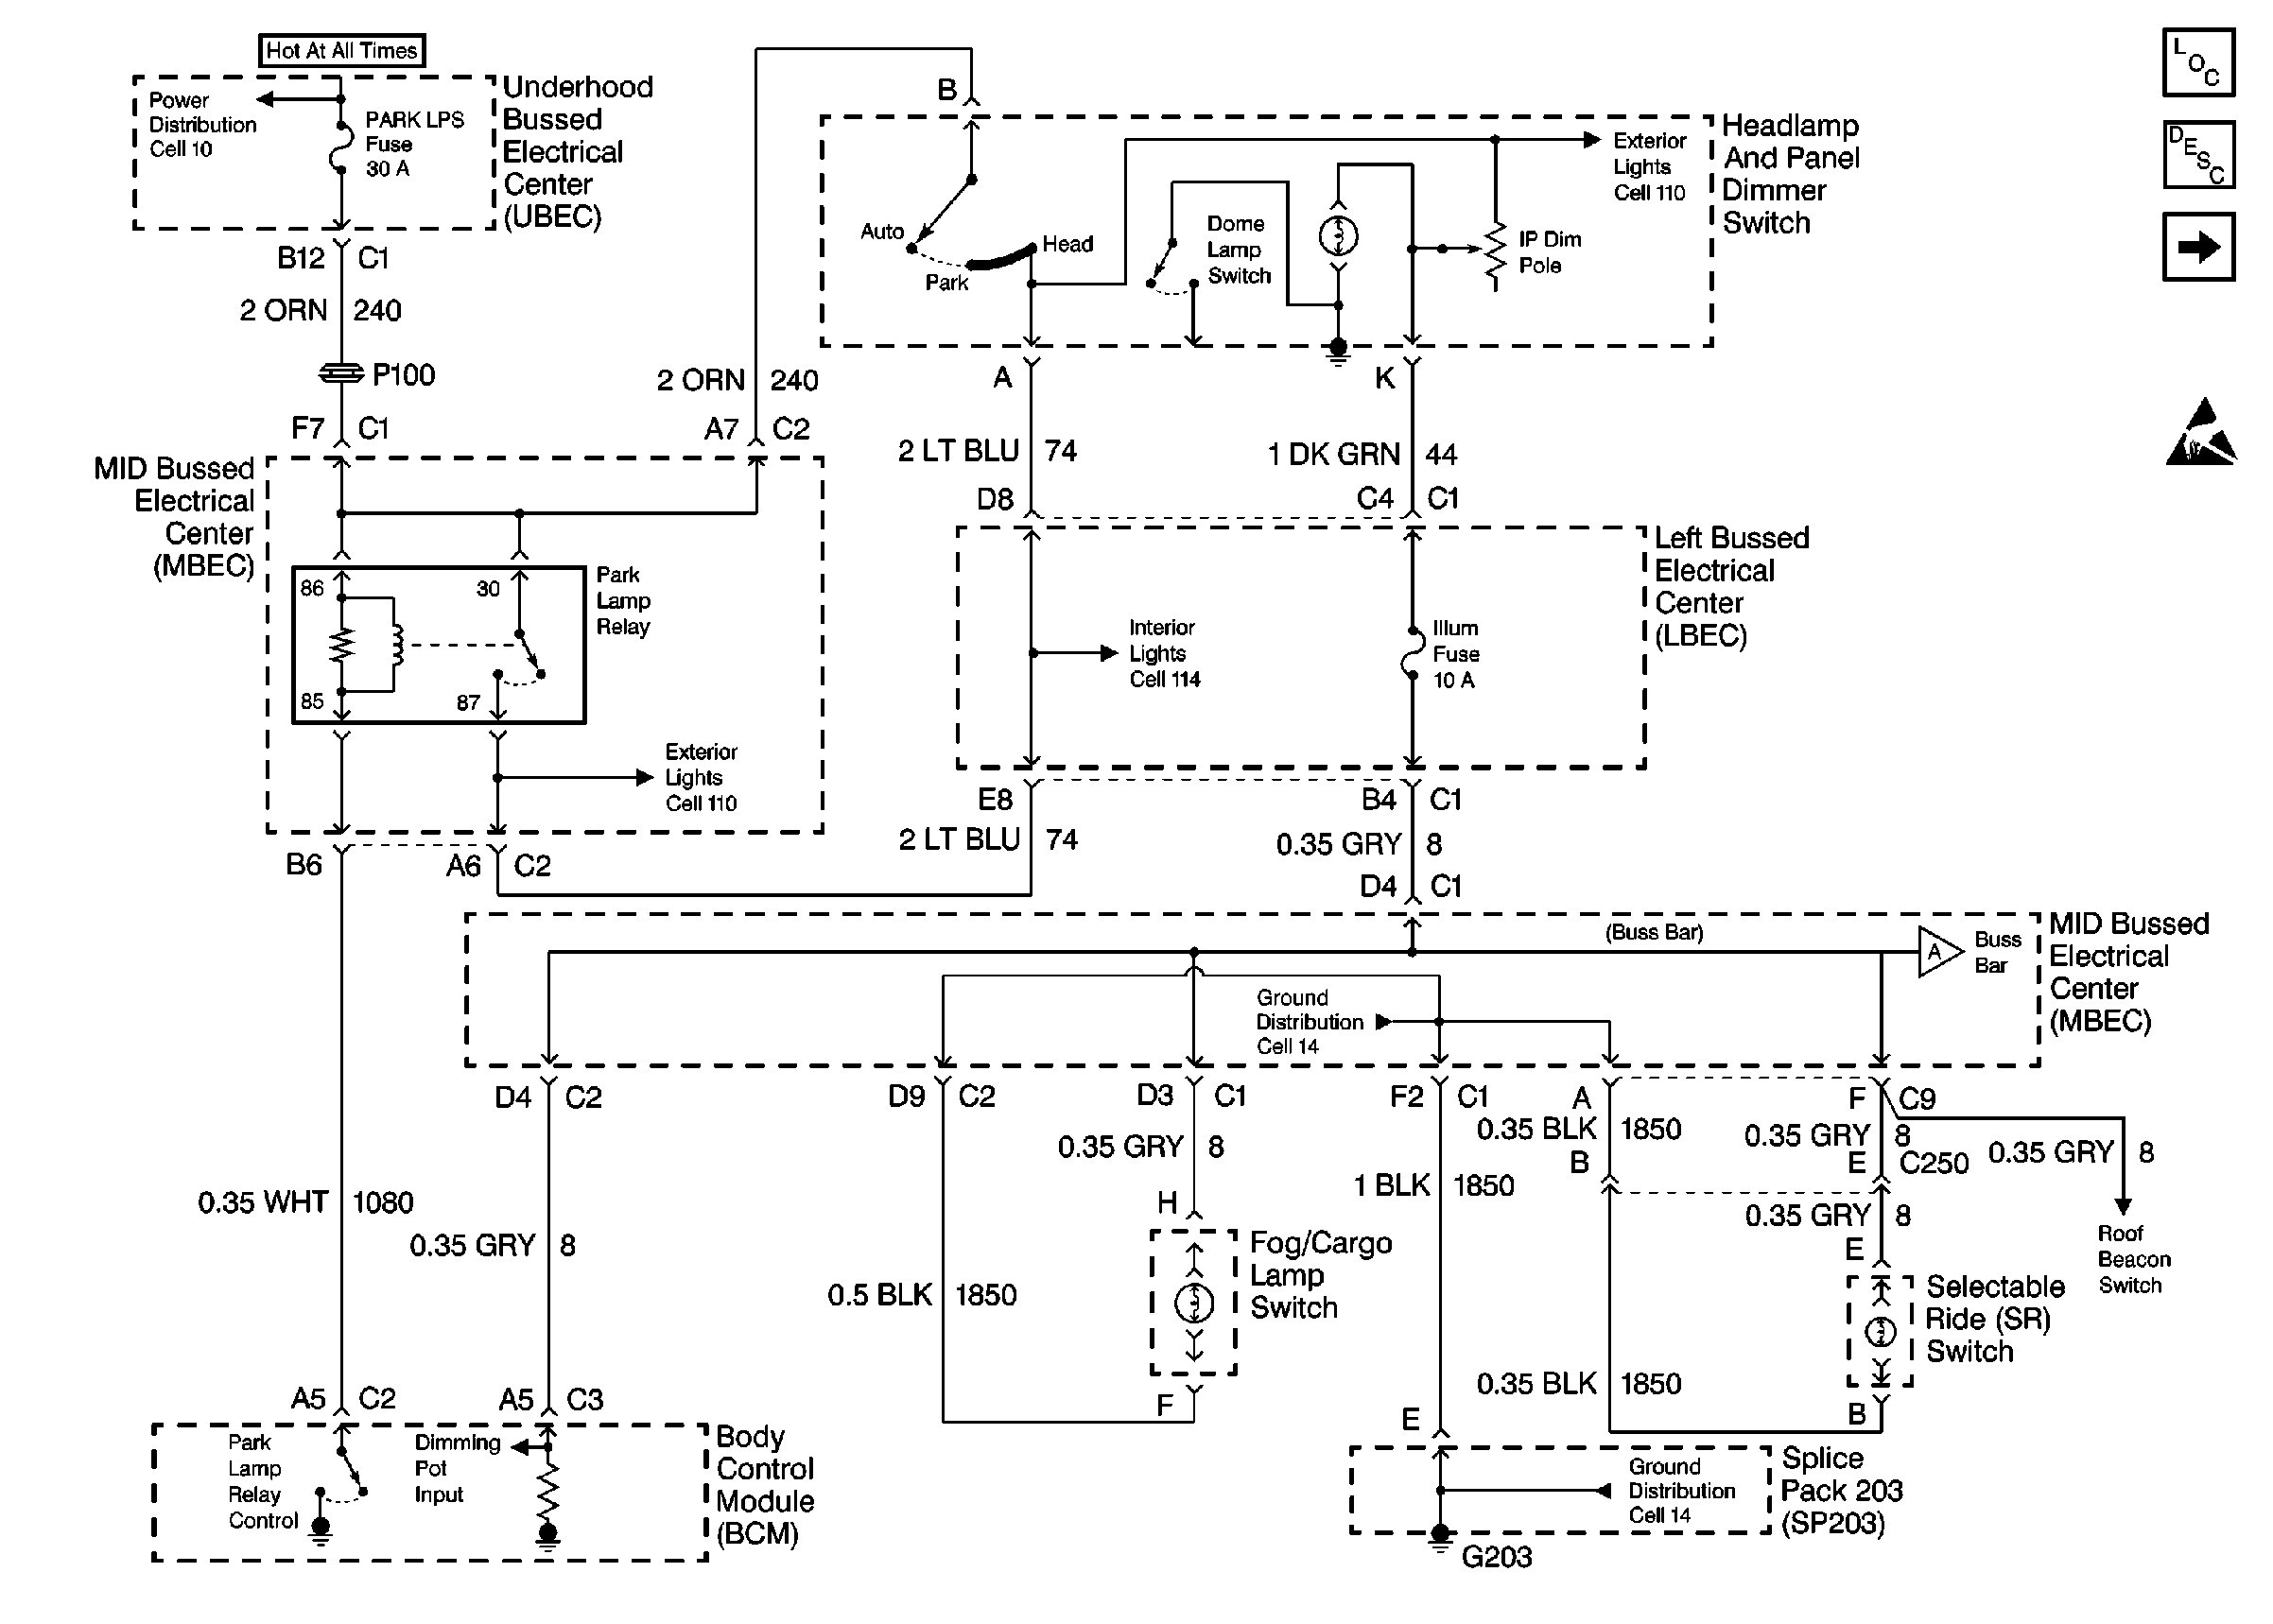 Best Of 2007 Chevy Tahoe Wiring Diagram Wiring Diagram Image 2007 GMC Yukon  Wiring-Diagram 2007 Chevy Tahoe Trailer Wiring Diagram